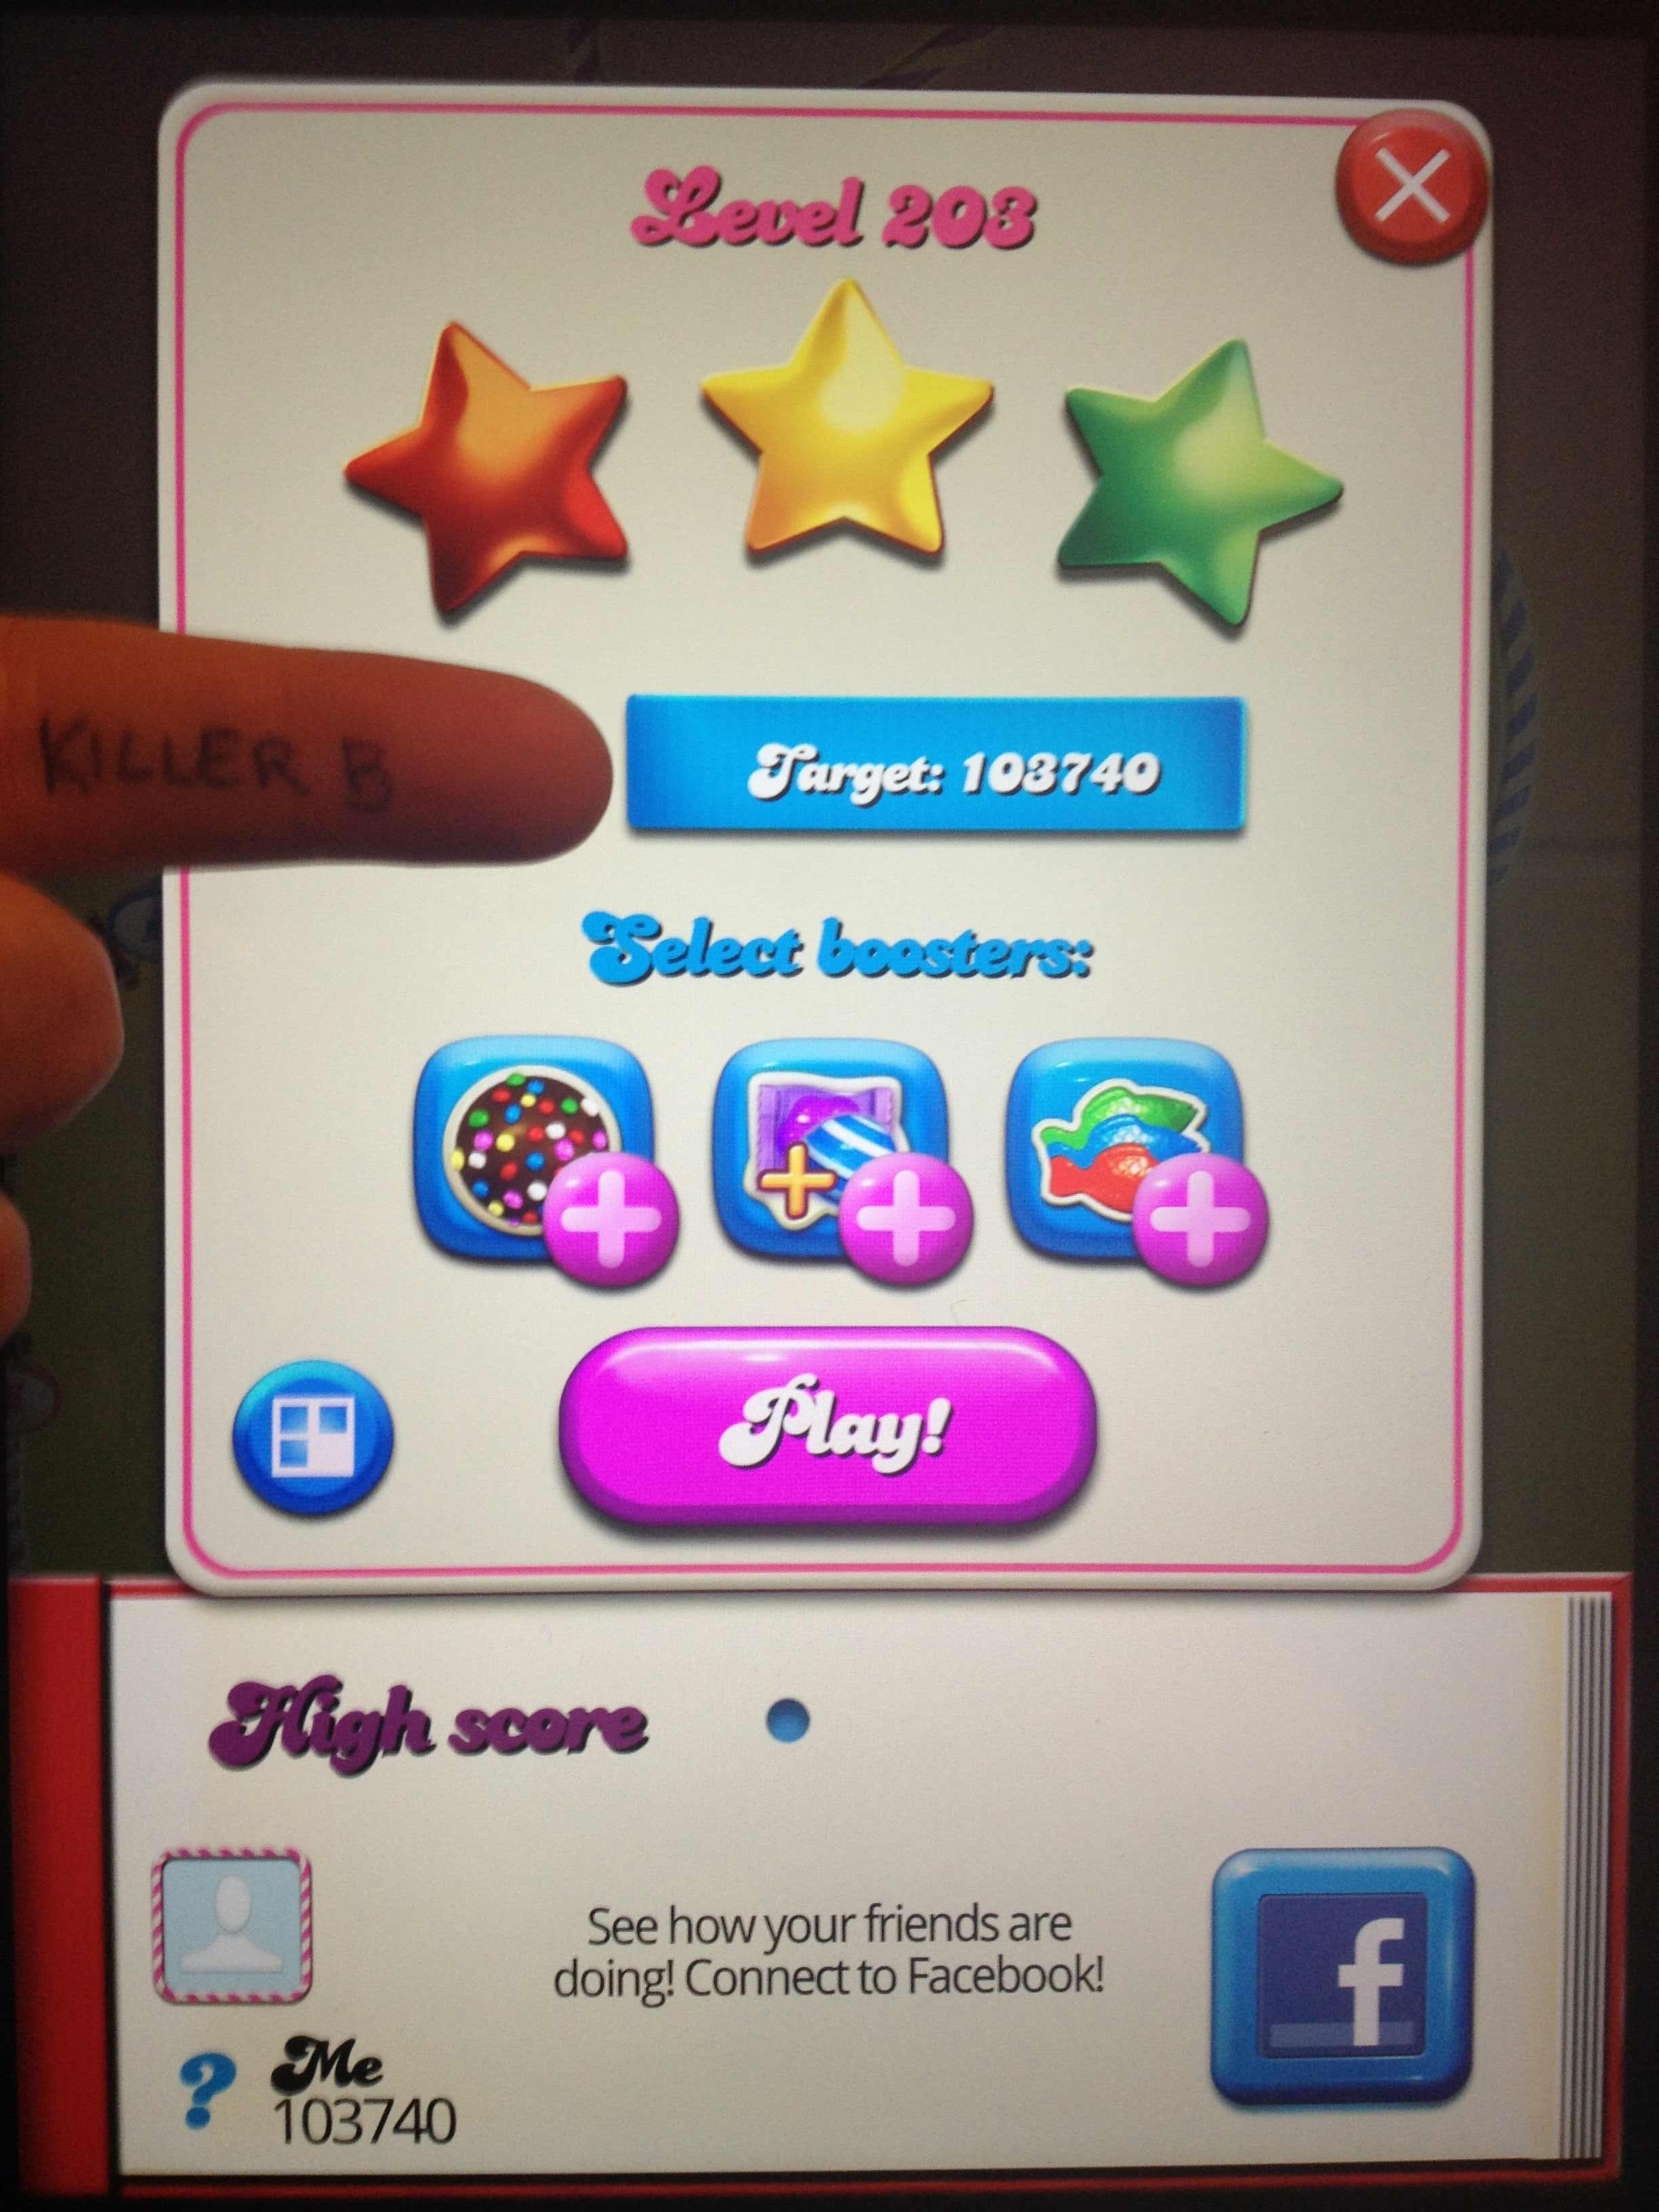 Candy Crush Saga: Level 203 103,740 points